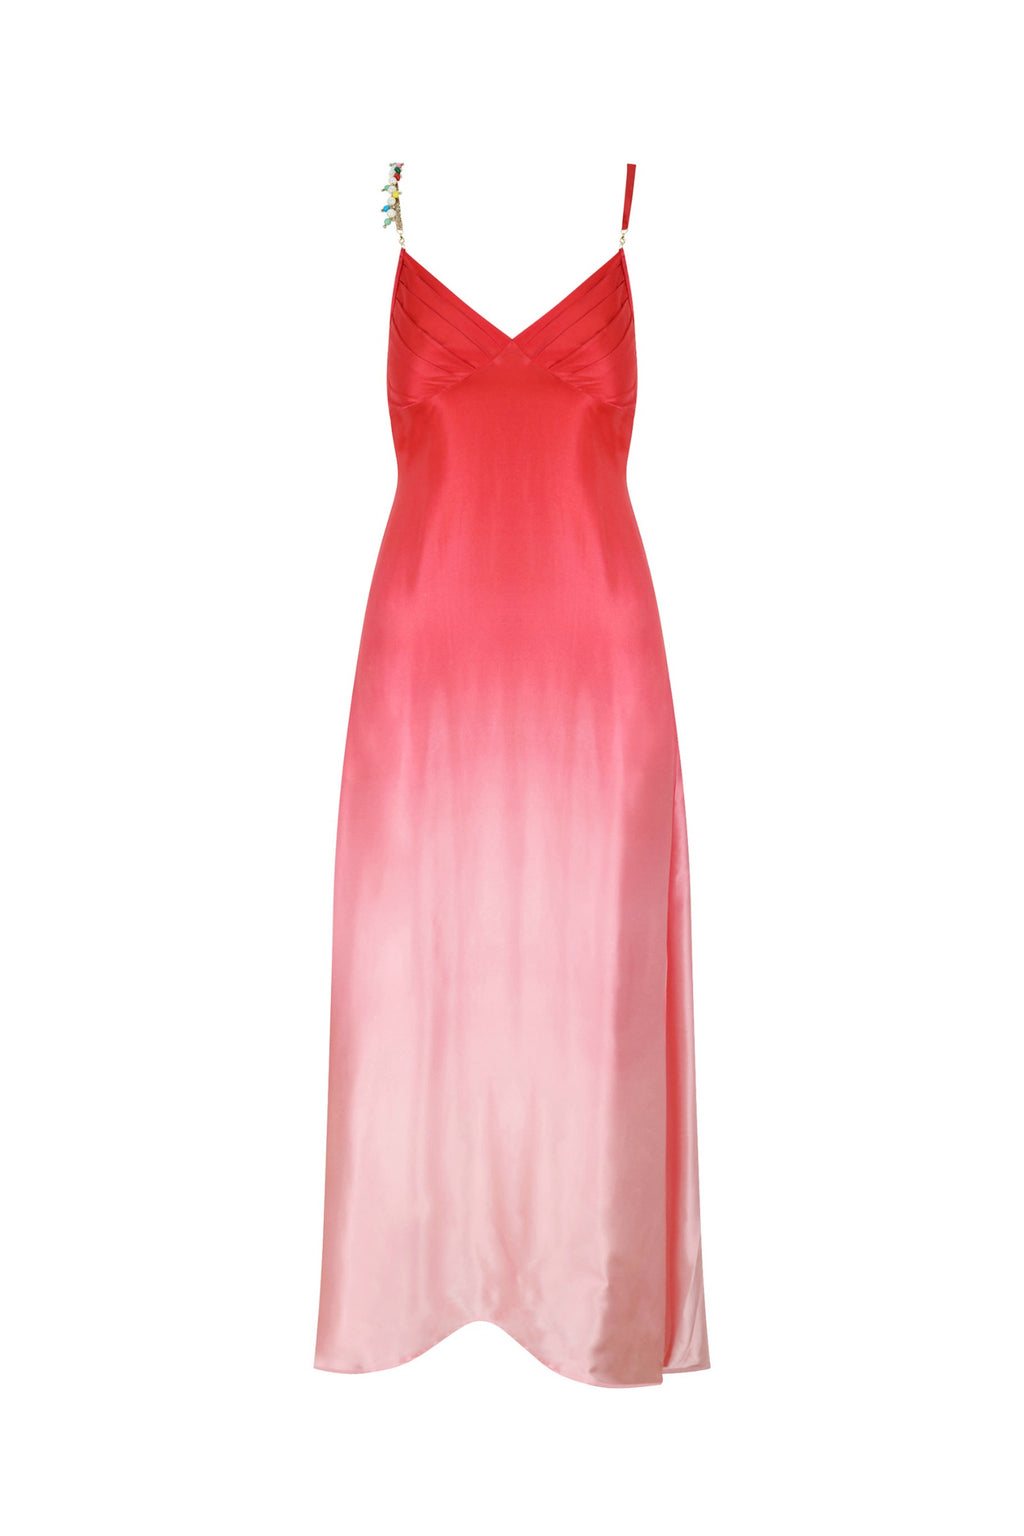 Edina Pink Bead Silk Maxi Dress